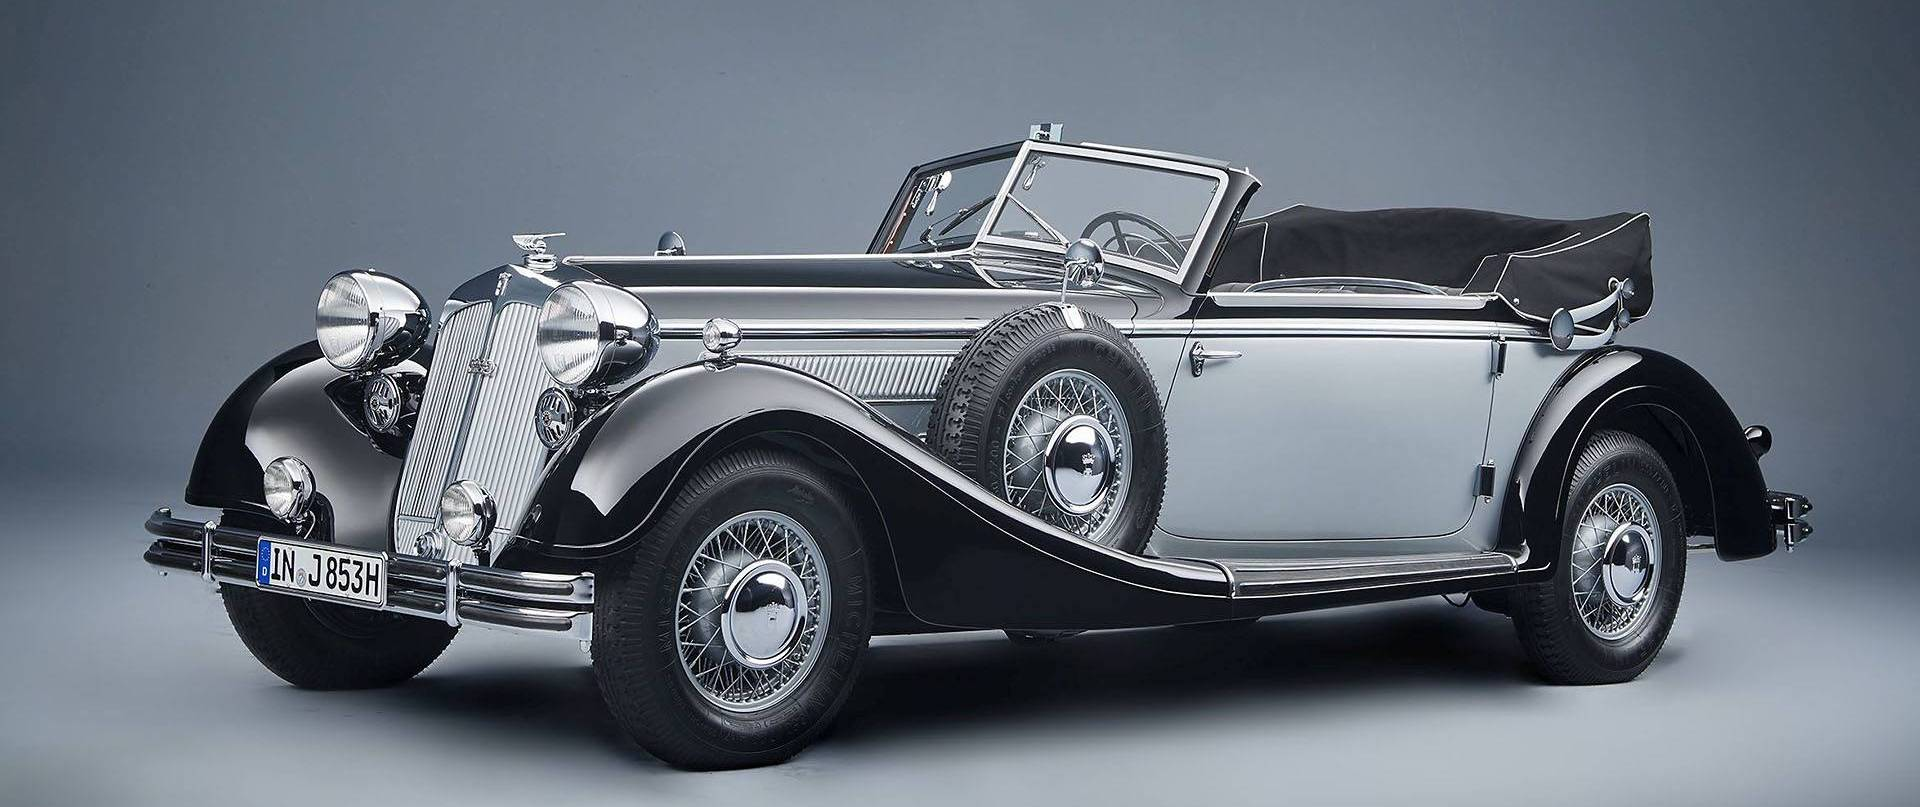 Audi might bring back historic Horch name as Maybach rival